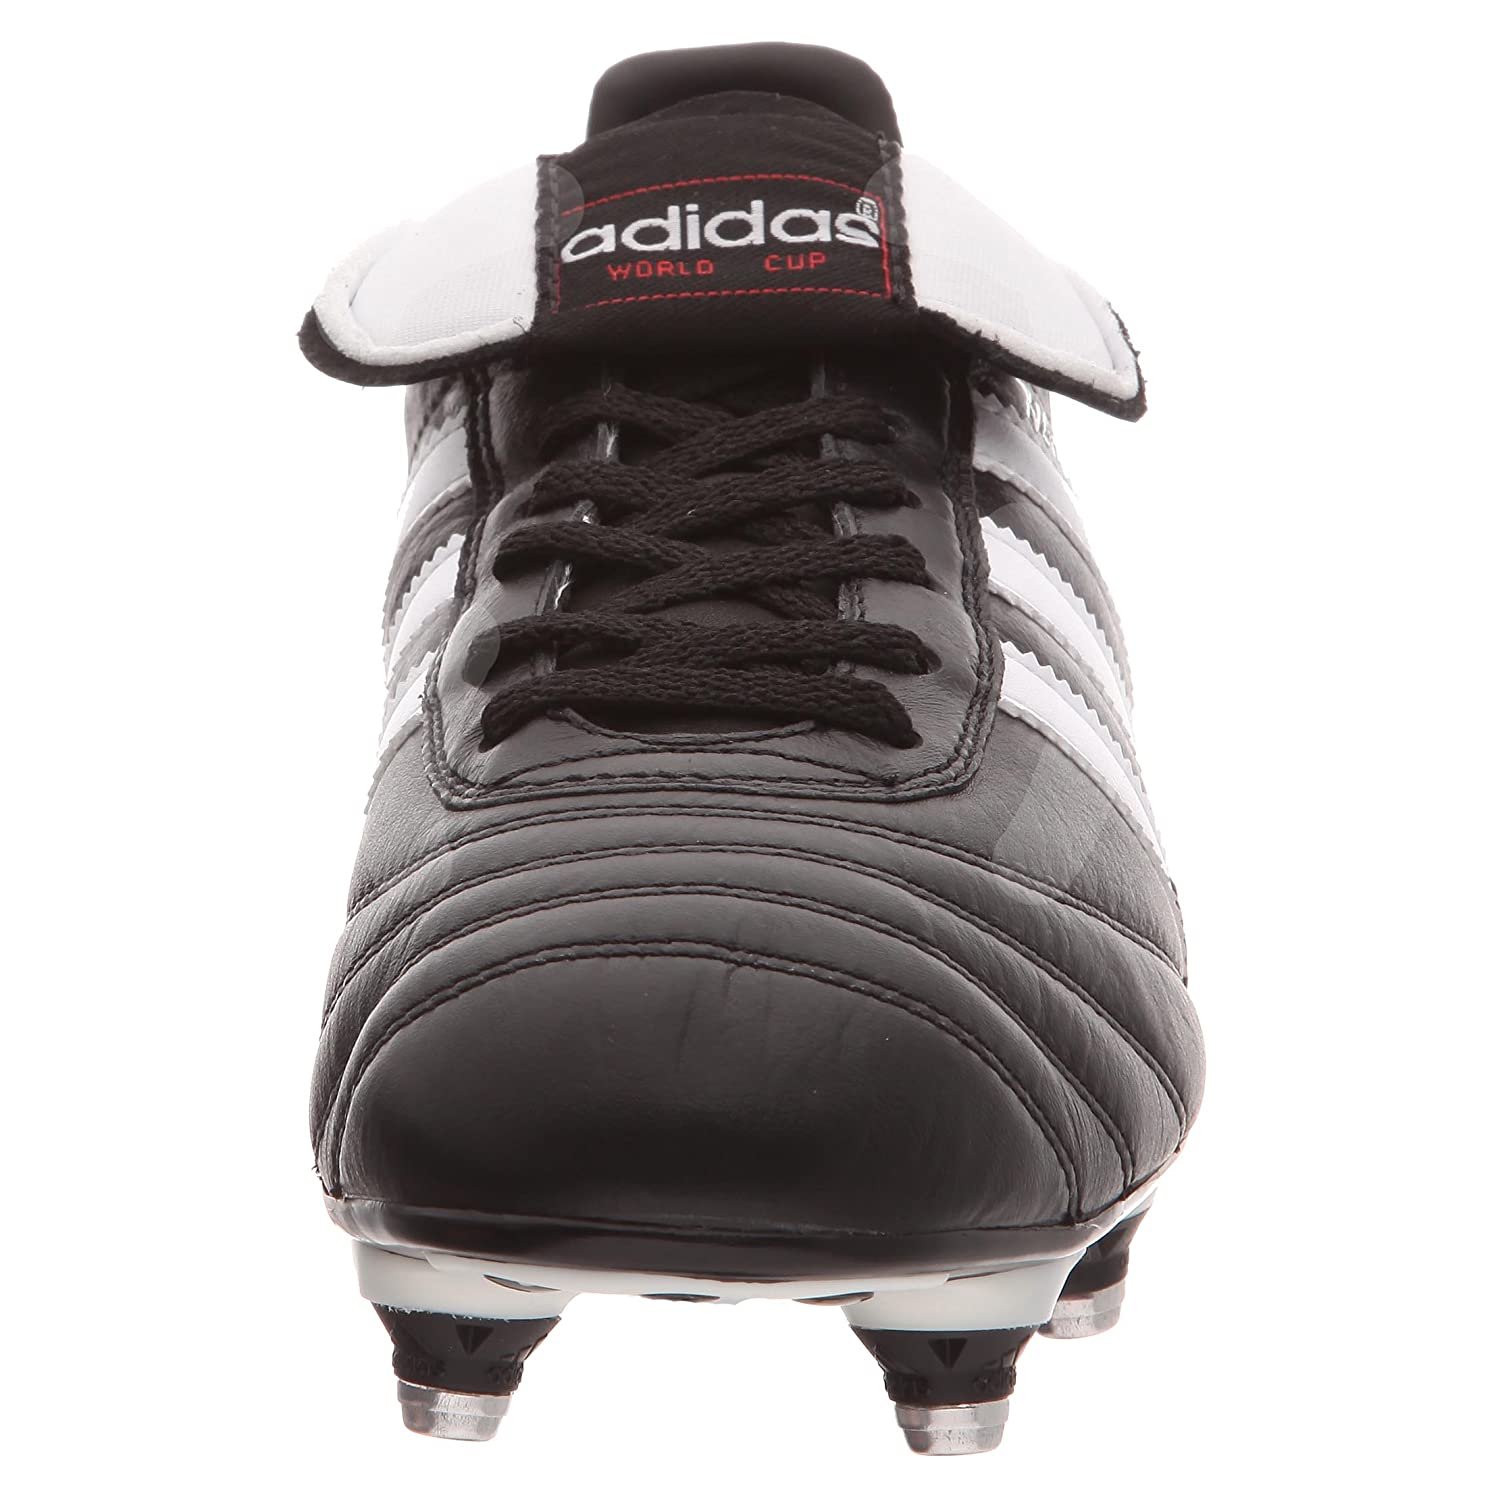 fdcc6105327 adidas Men s World Cup Football Boots  Amazon.co.uk  Shoes   Bags